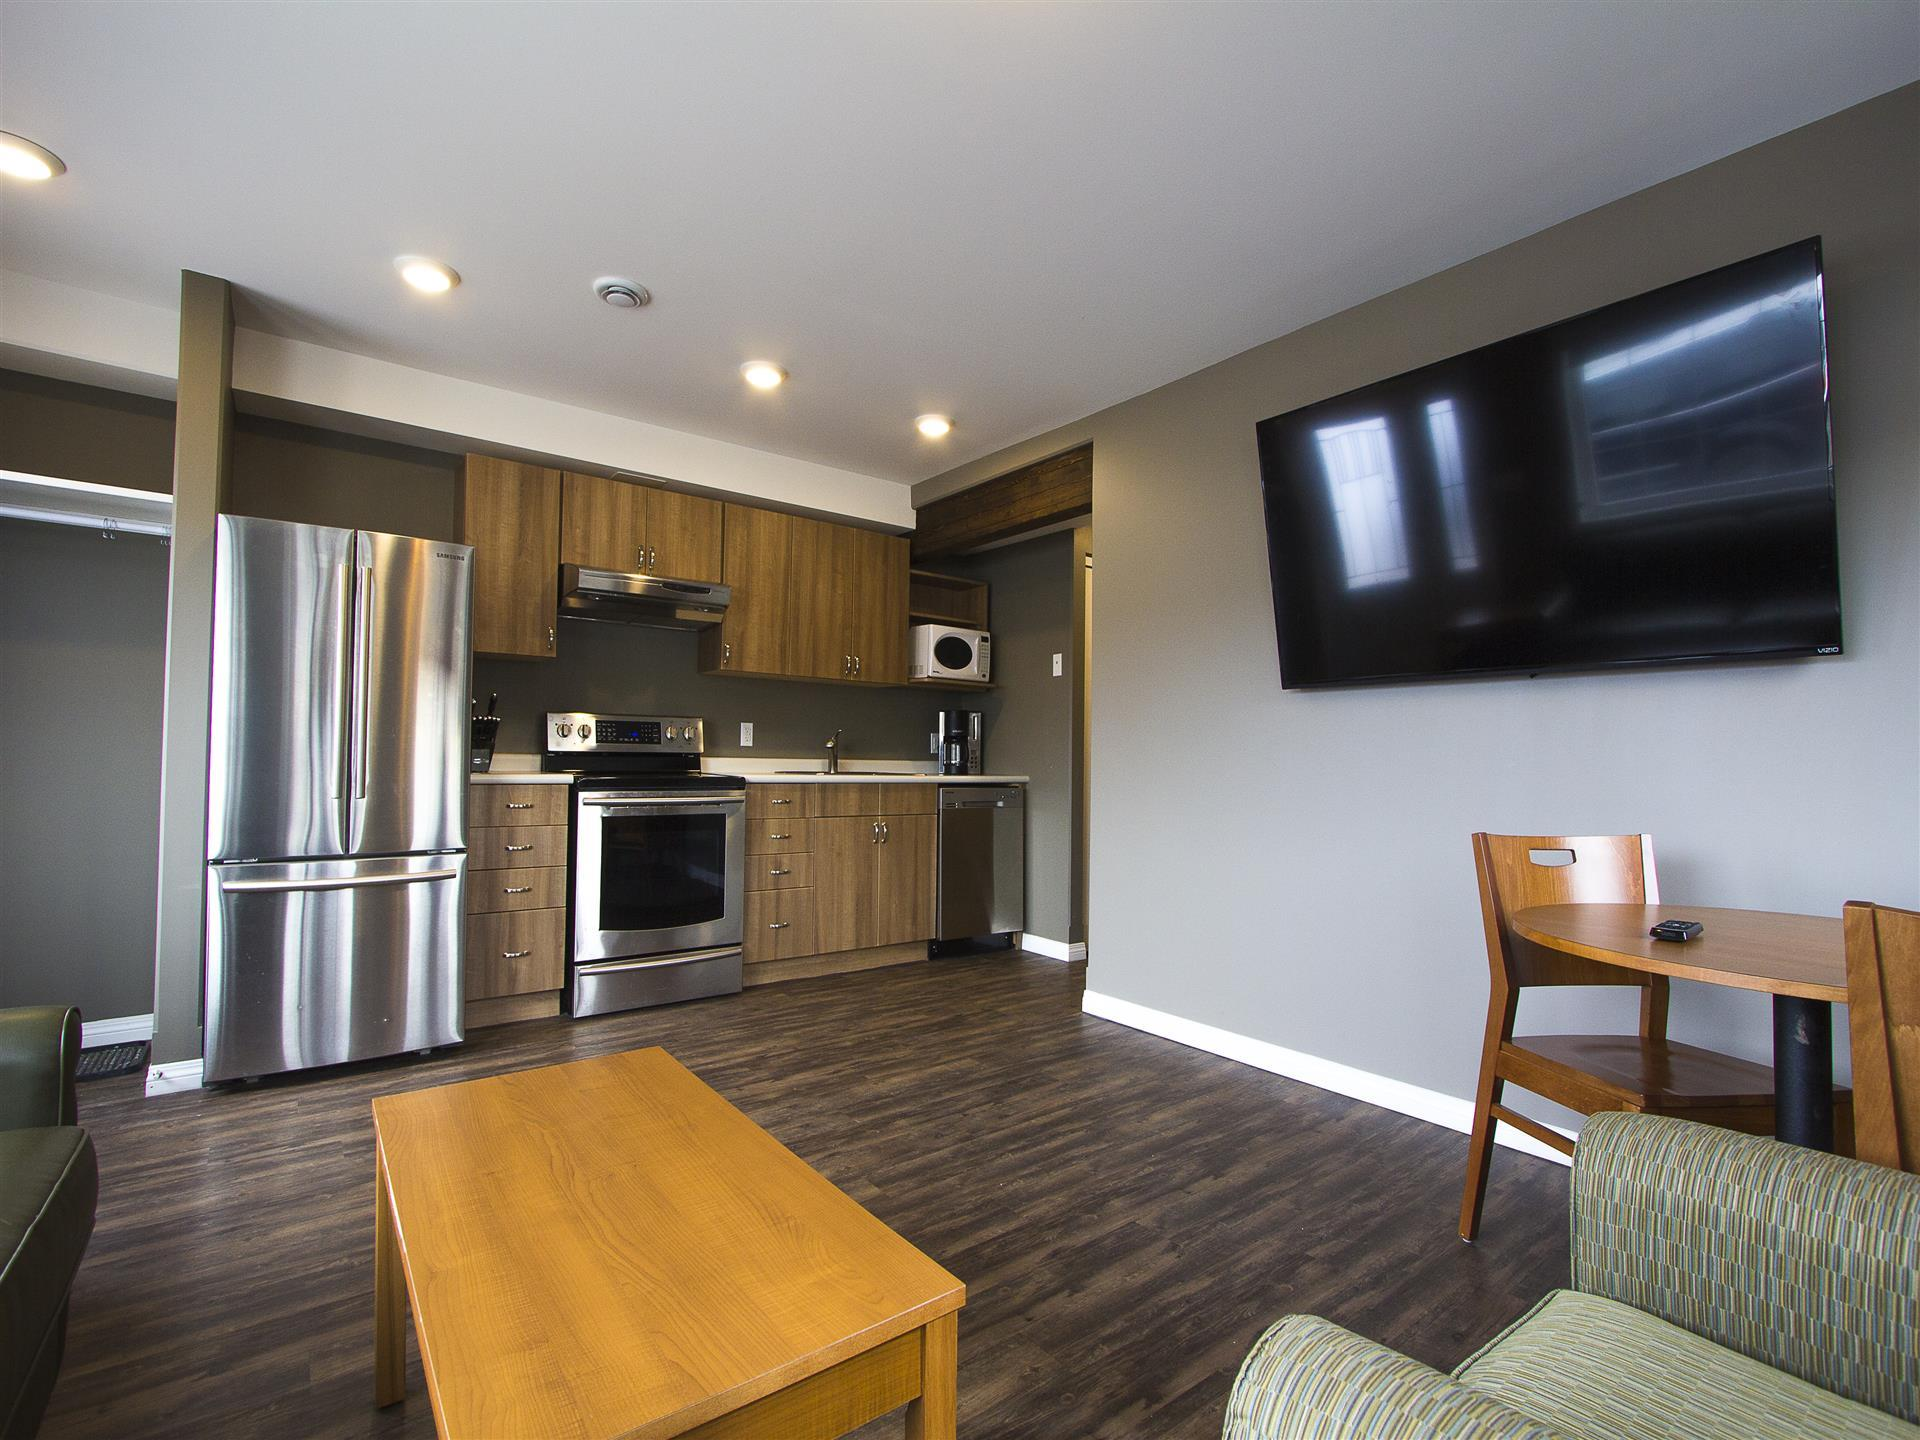 Suite with kitchen appliances and TV